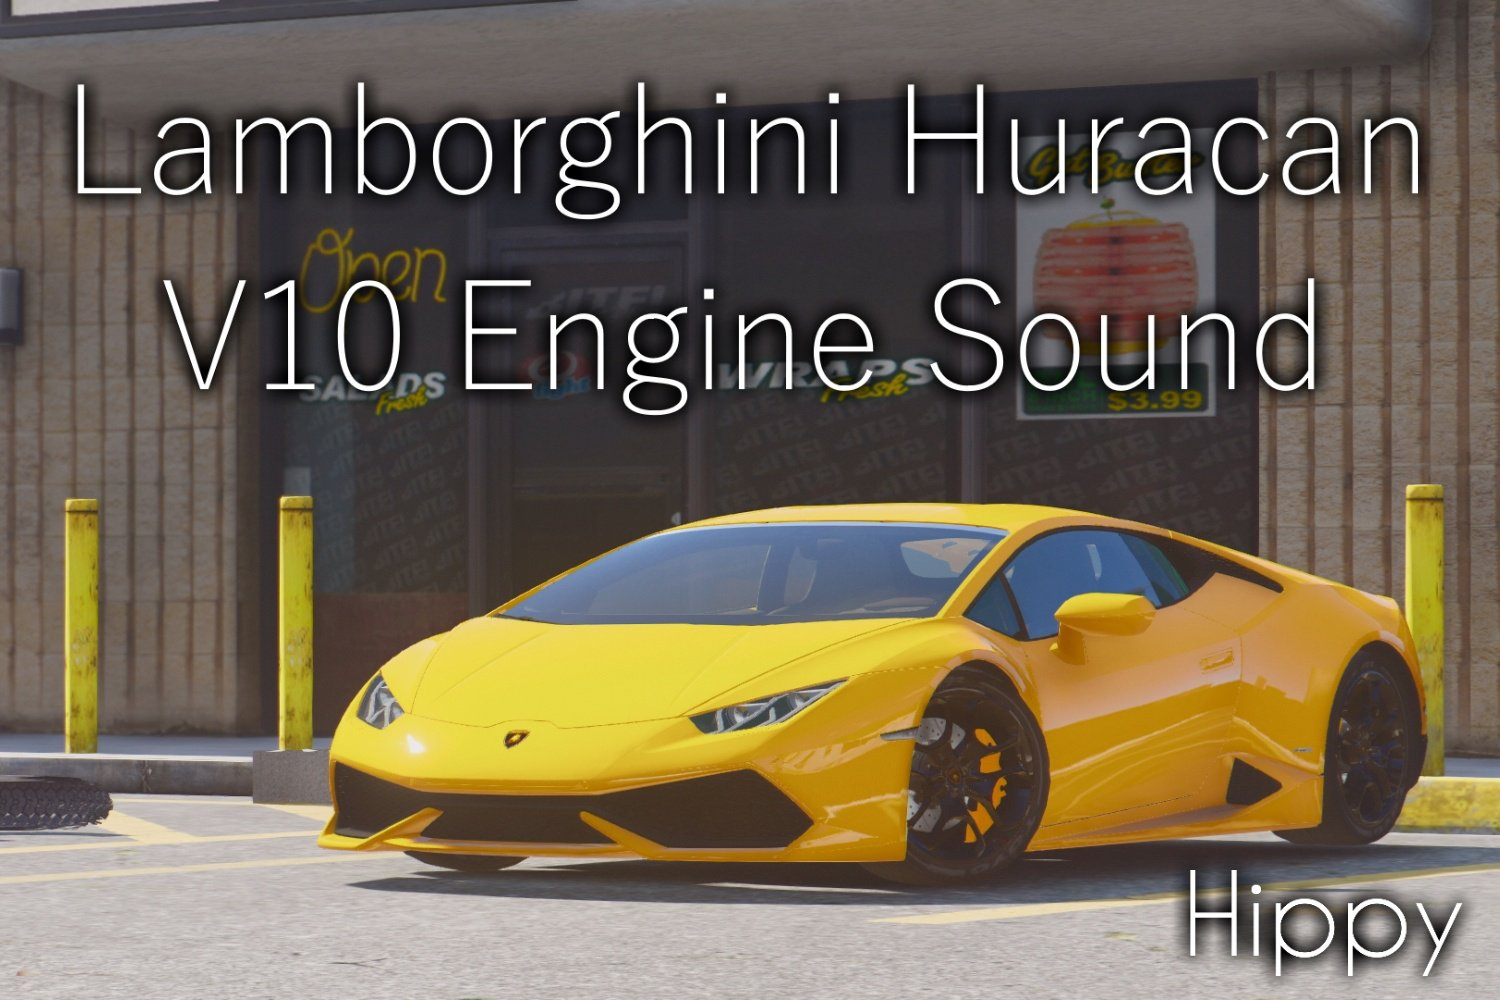 Lamborghini Huracan V10 Engine Sound - GTA5